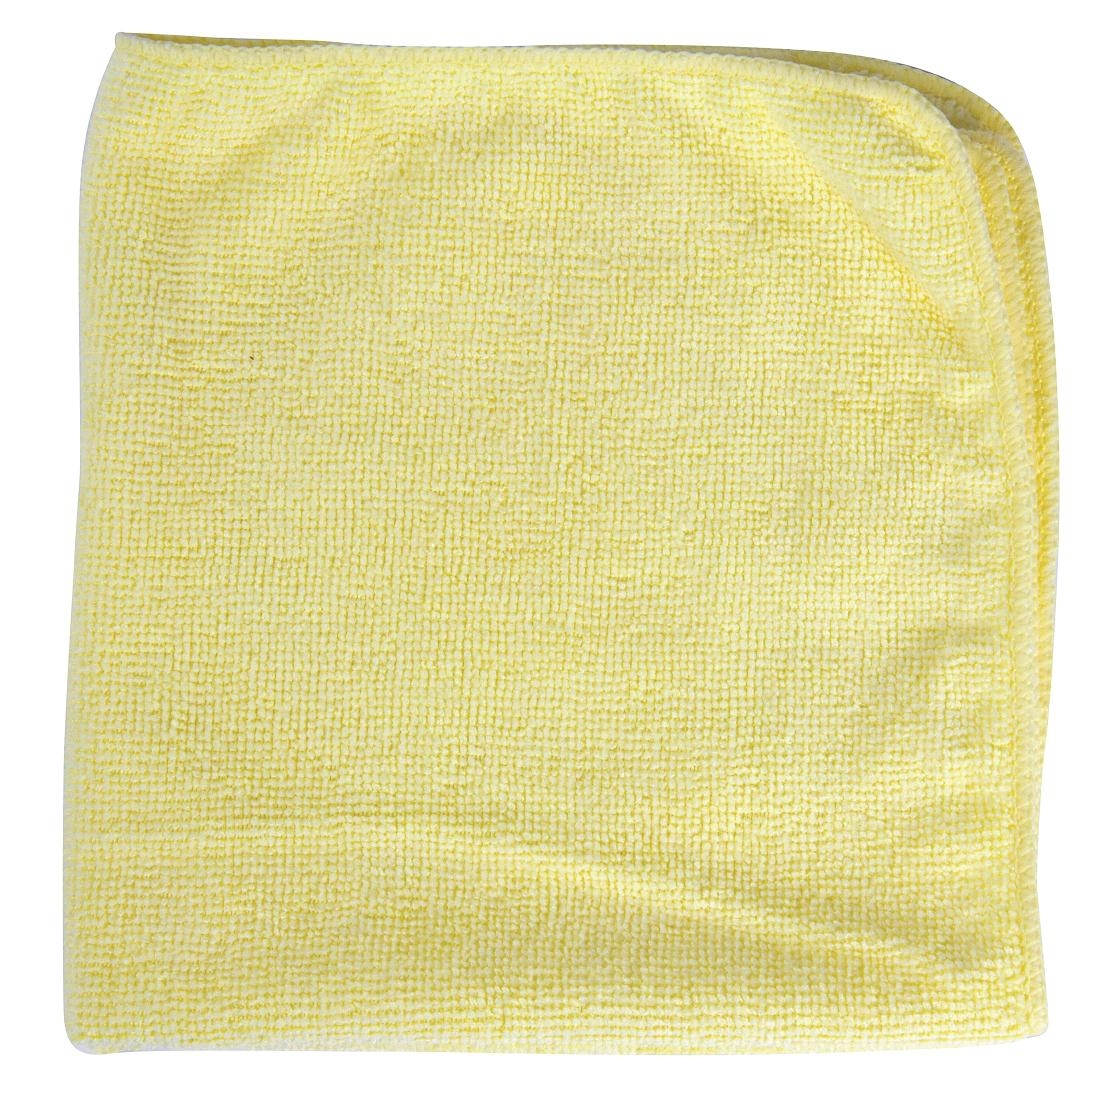 Rubbermaid Pro Microfibre Cloth Yellow